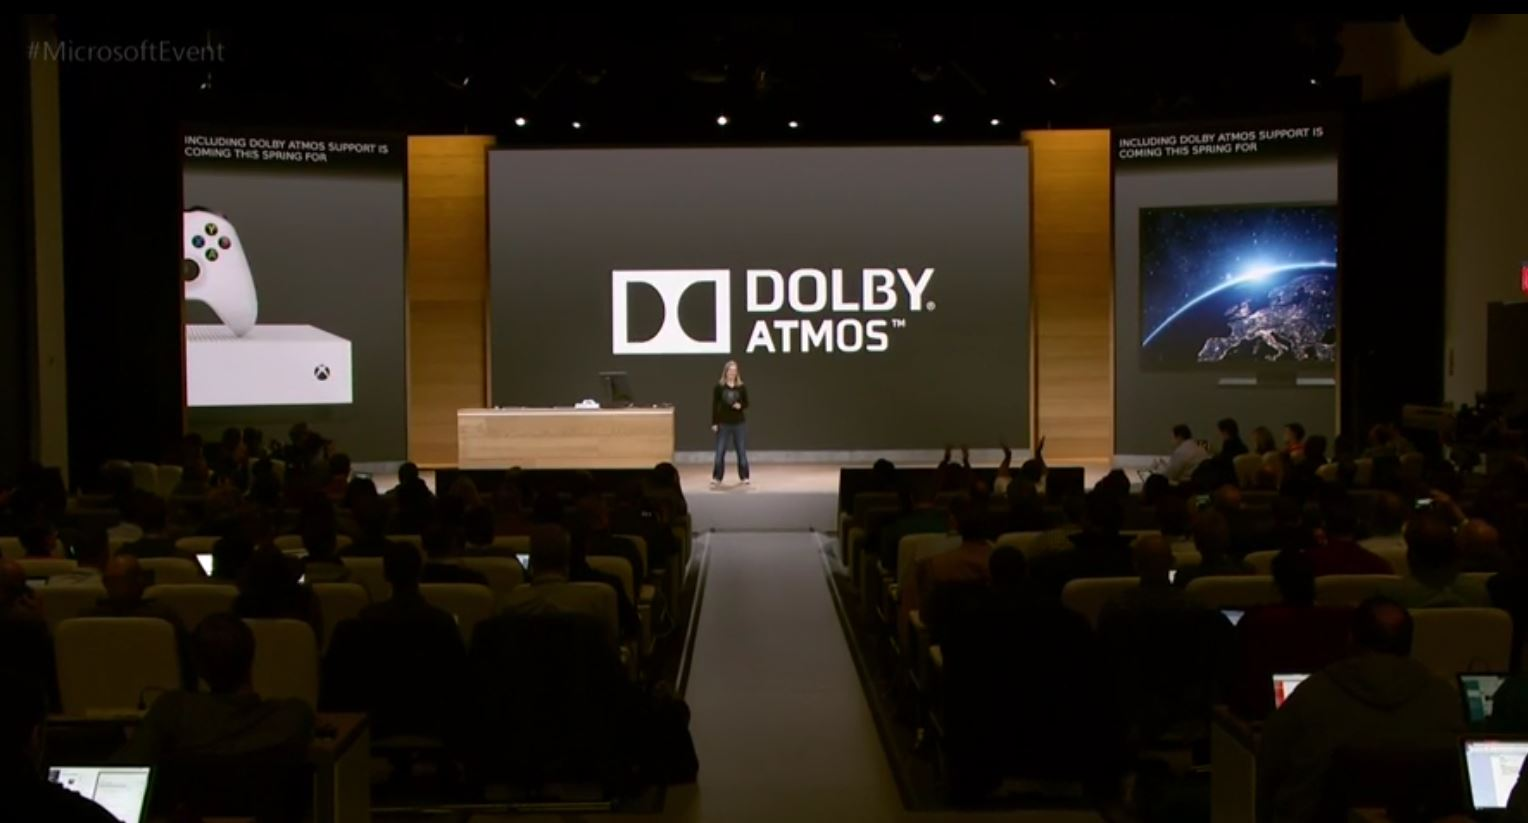 xbox-one-s-dolby-update